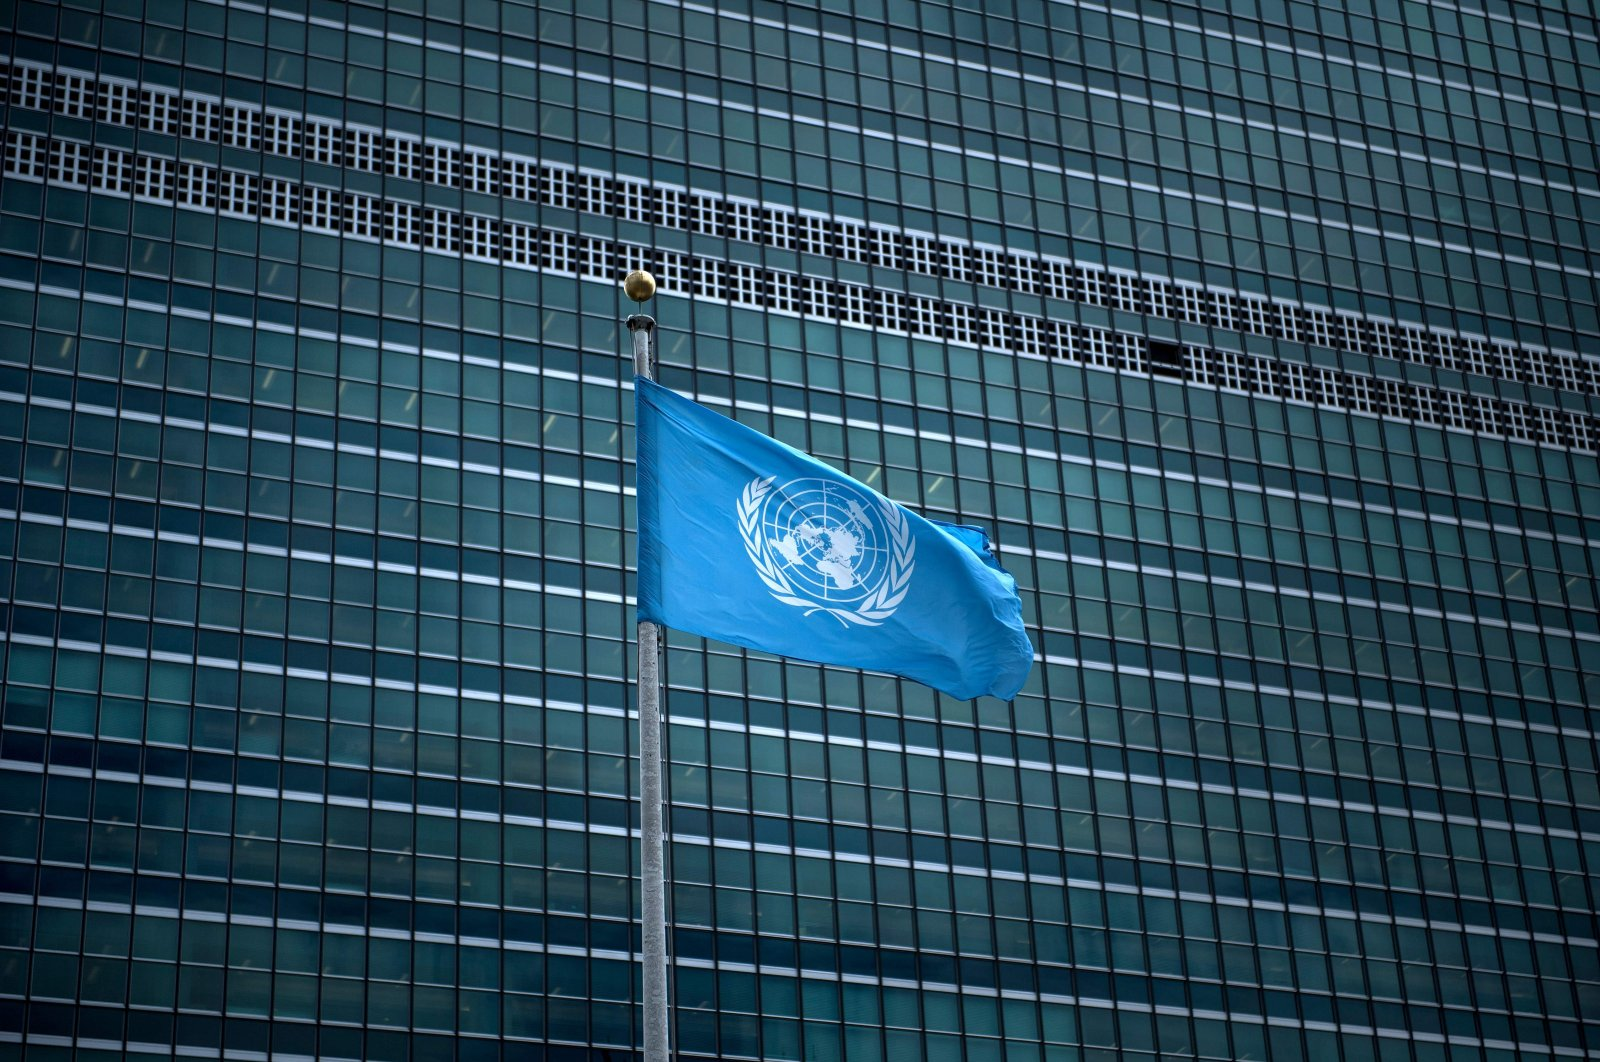 The United Nations headquarters seen during the 72nd session of the United Nations General Assembly September in New York, Sept. 19, 2017. (AFP Photo)